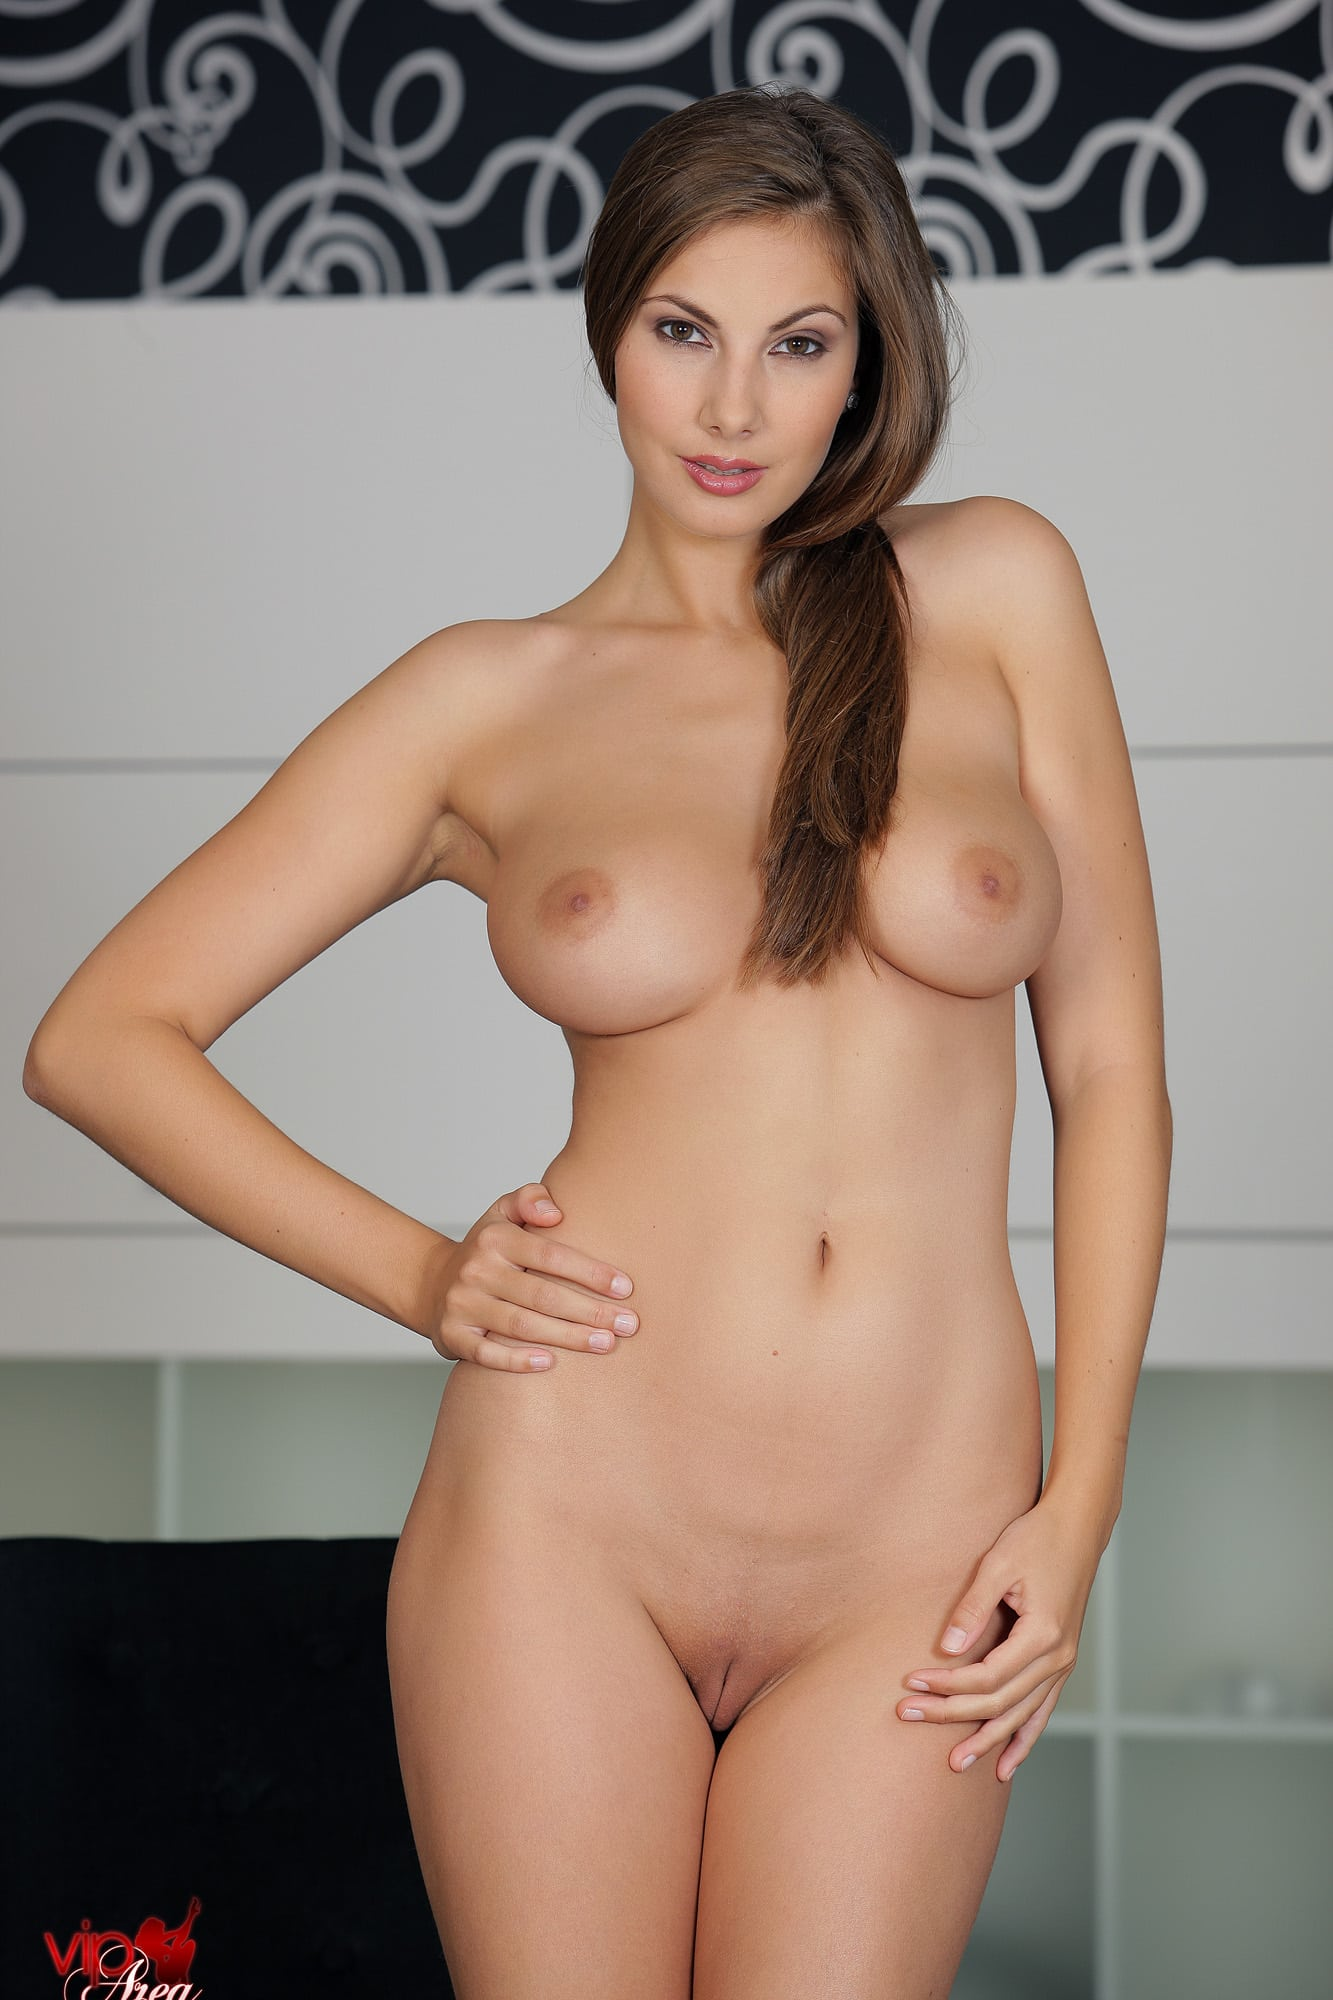 Castiglia recommend Pigtails street hairy hot